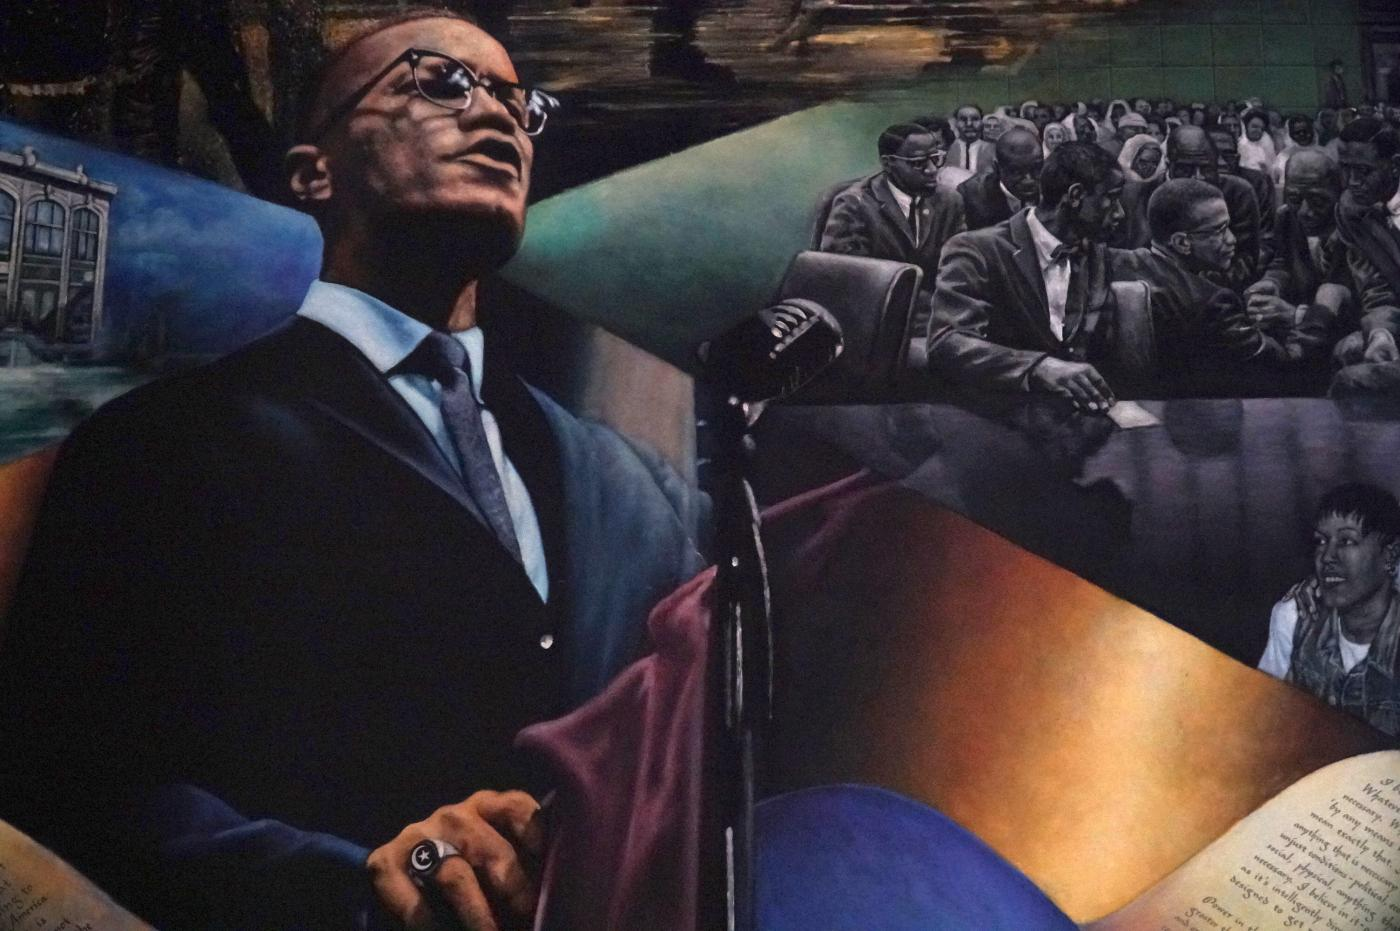 The fraught and unforgettable: How Malcolm X's legacy lives on in America